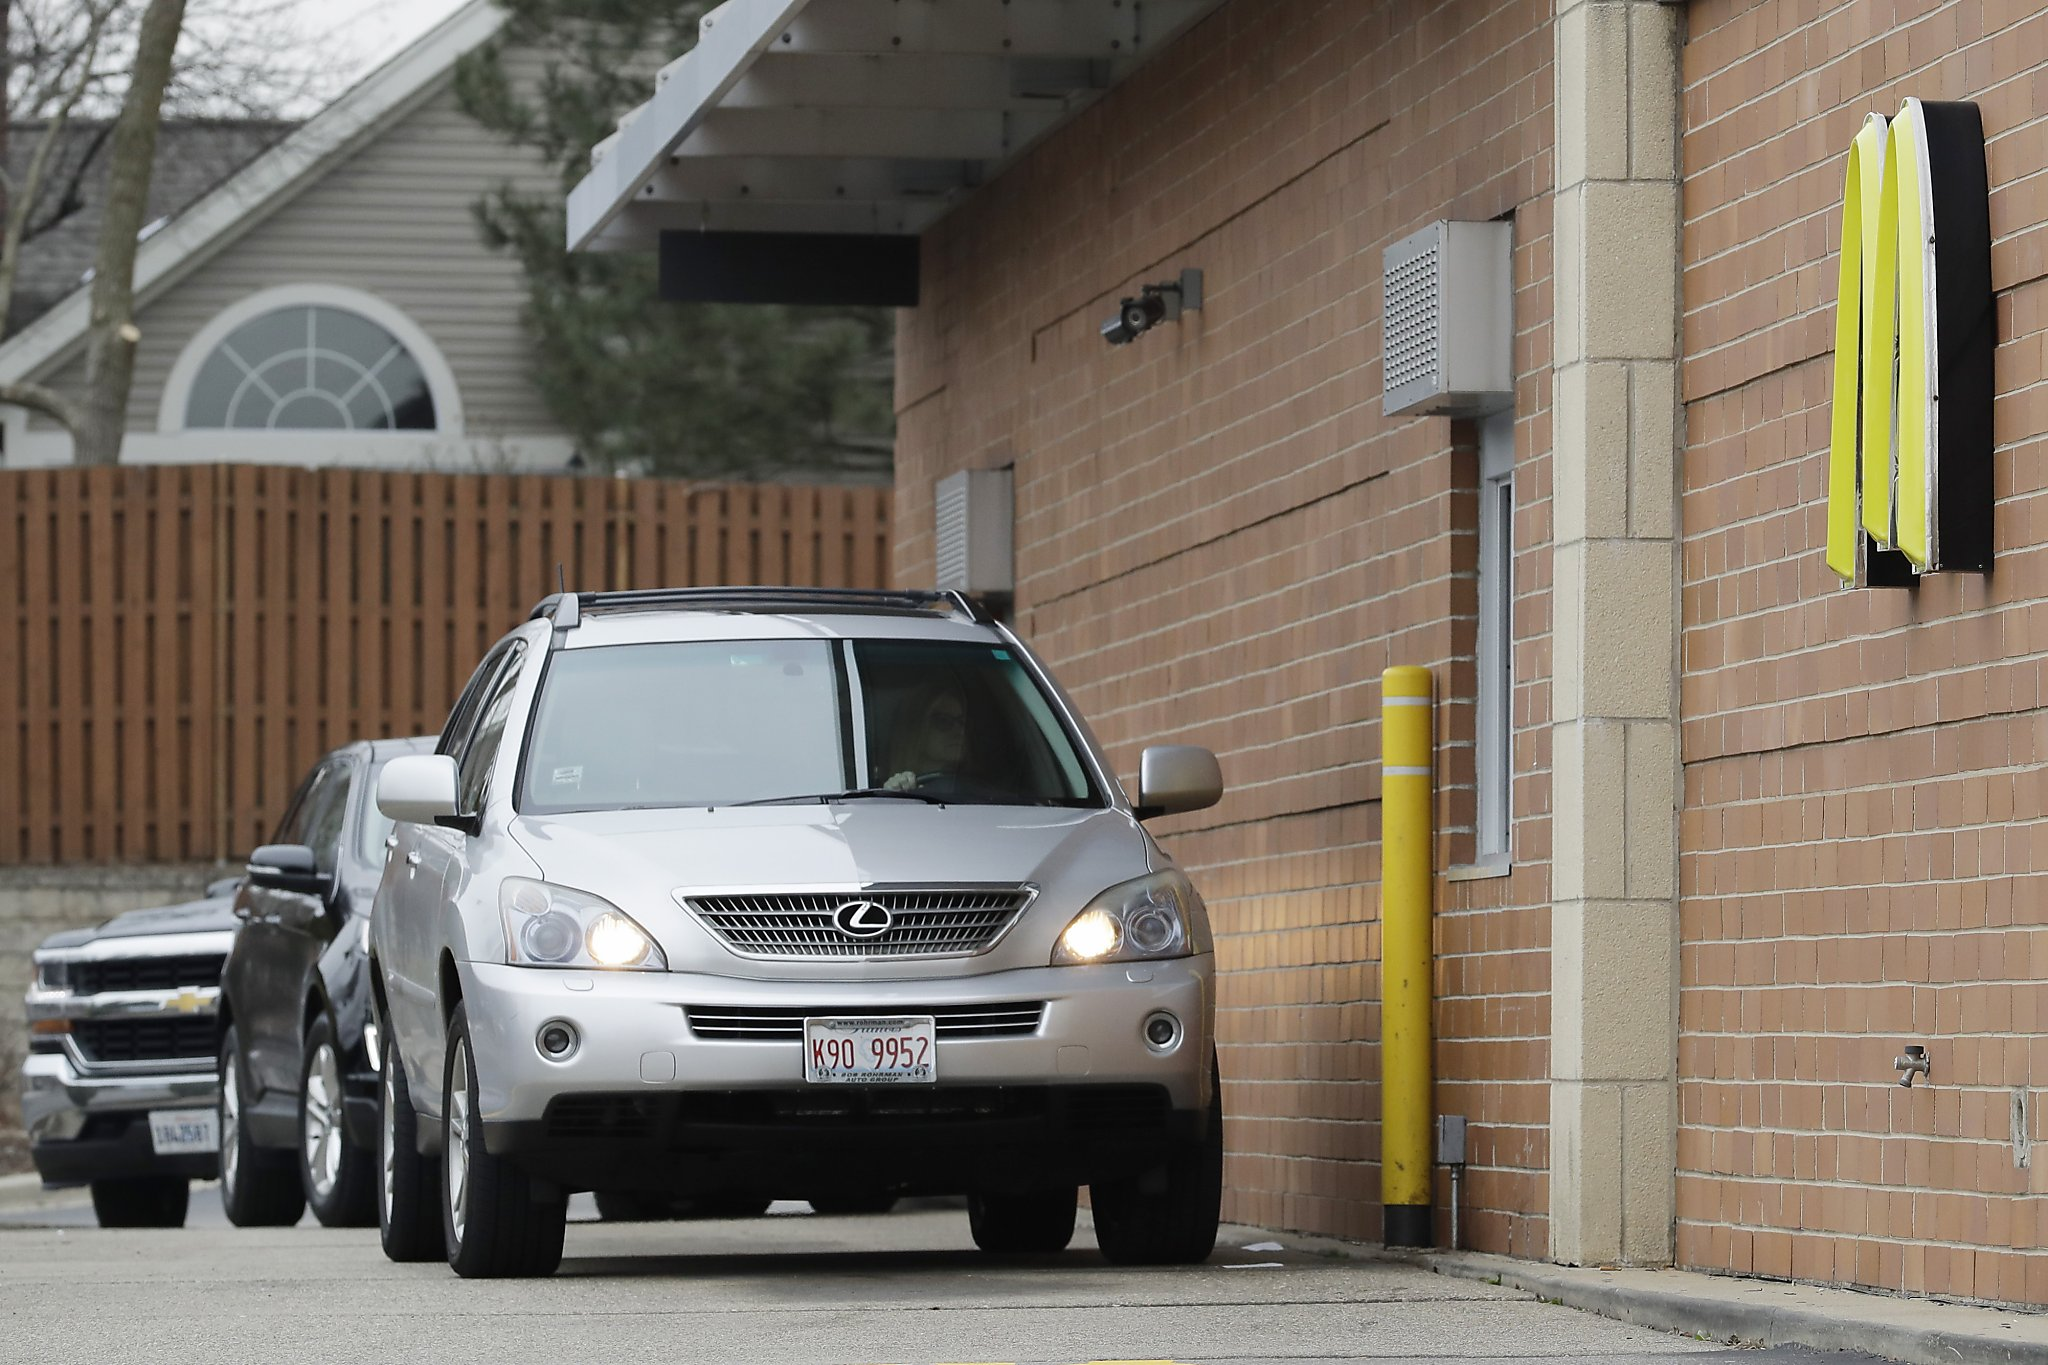 No mask, no service: McDonald's customer attacks drive-through worker over safety rule